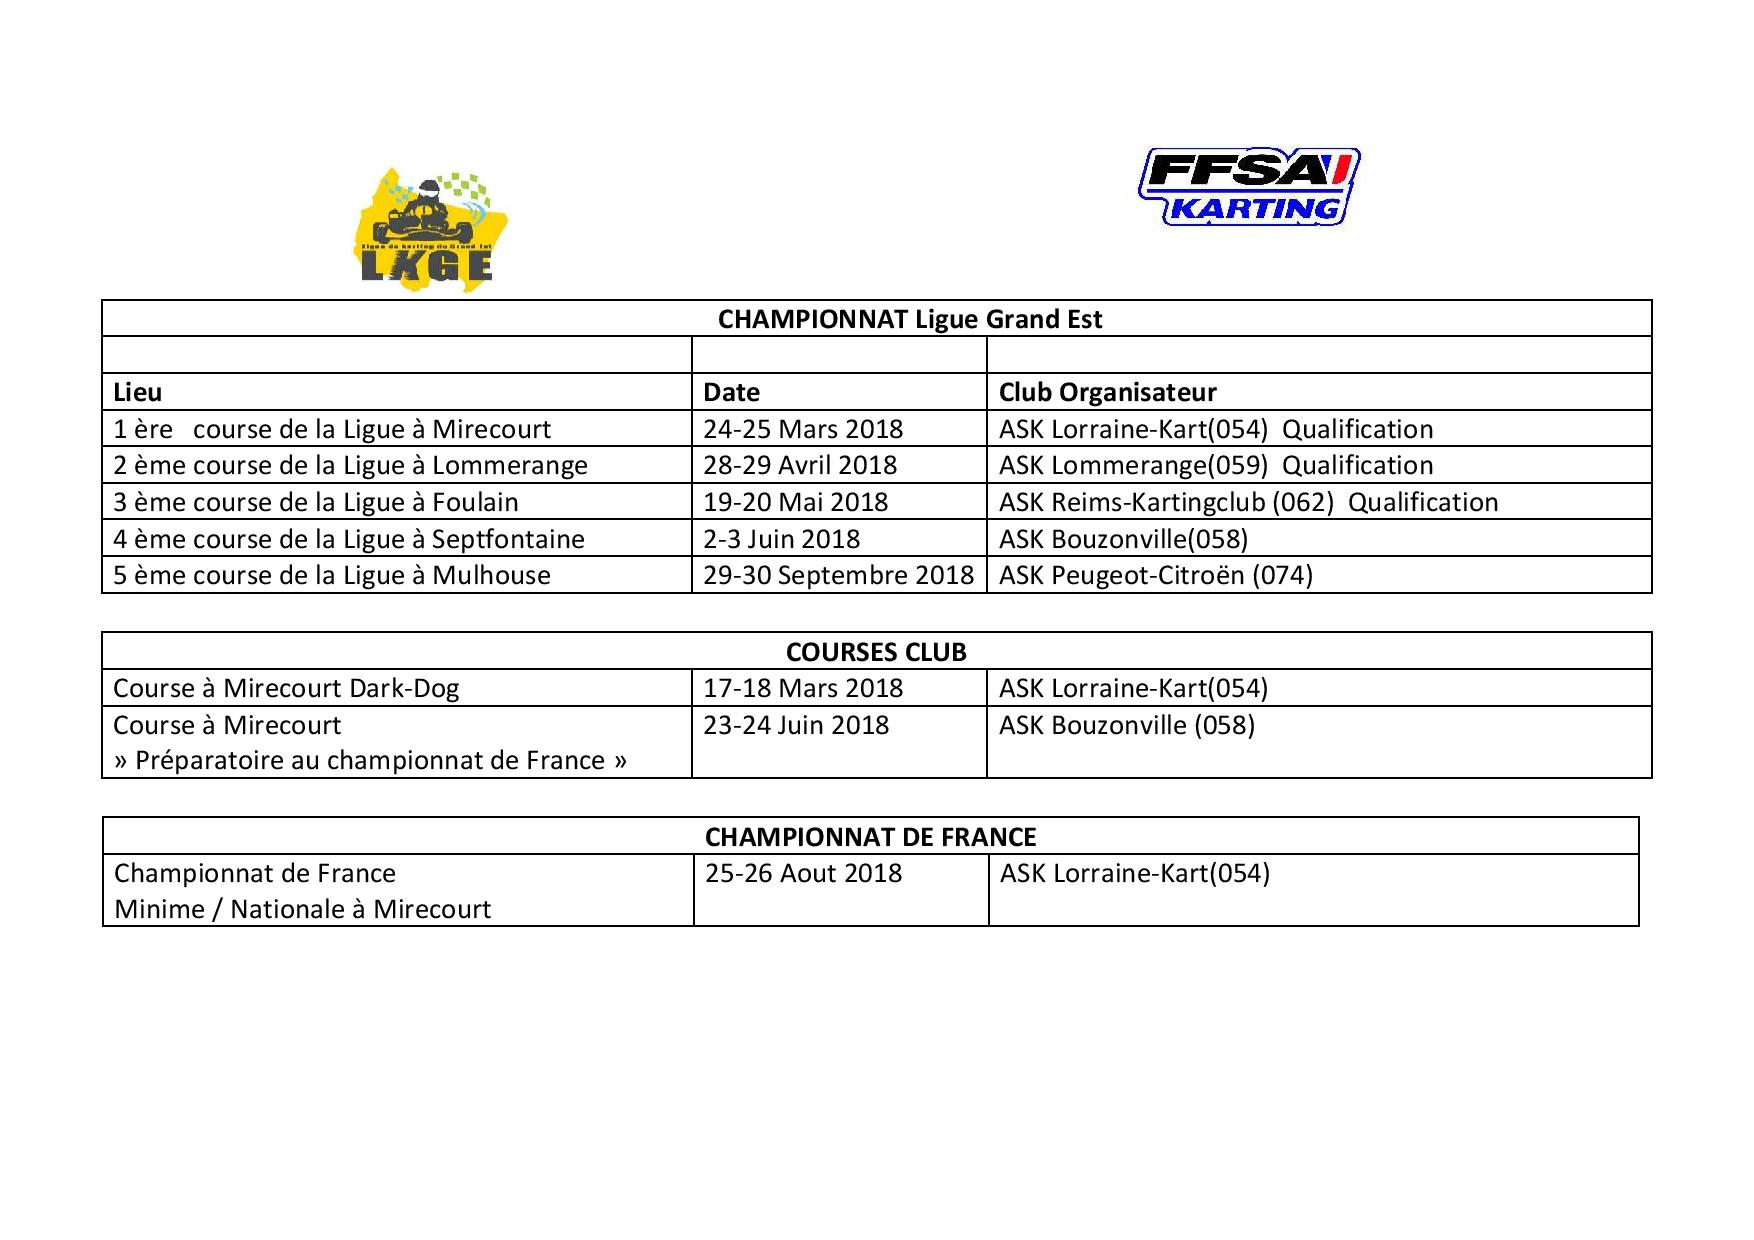 Ligue karting ge calendrier courses publie 22 12 17 page 001 1